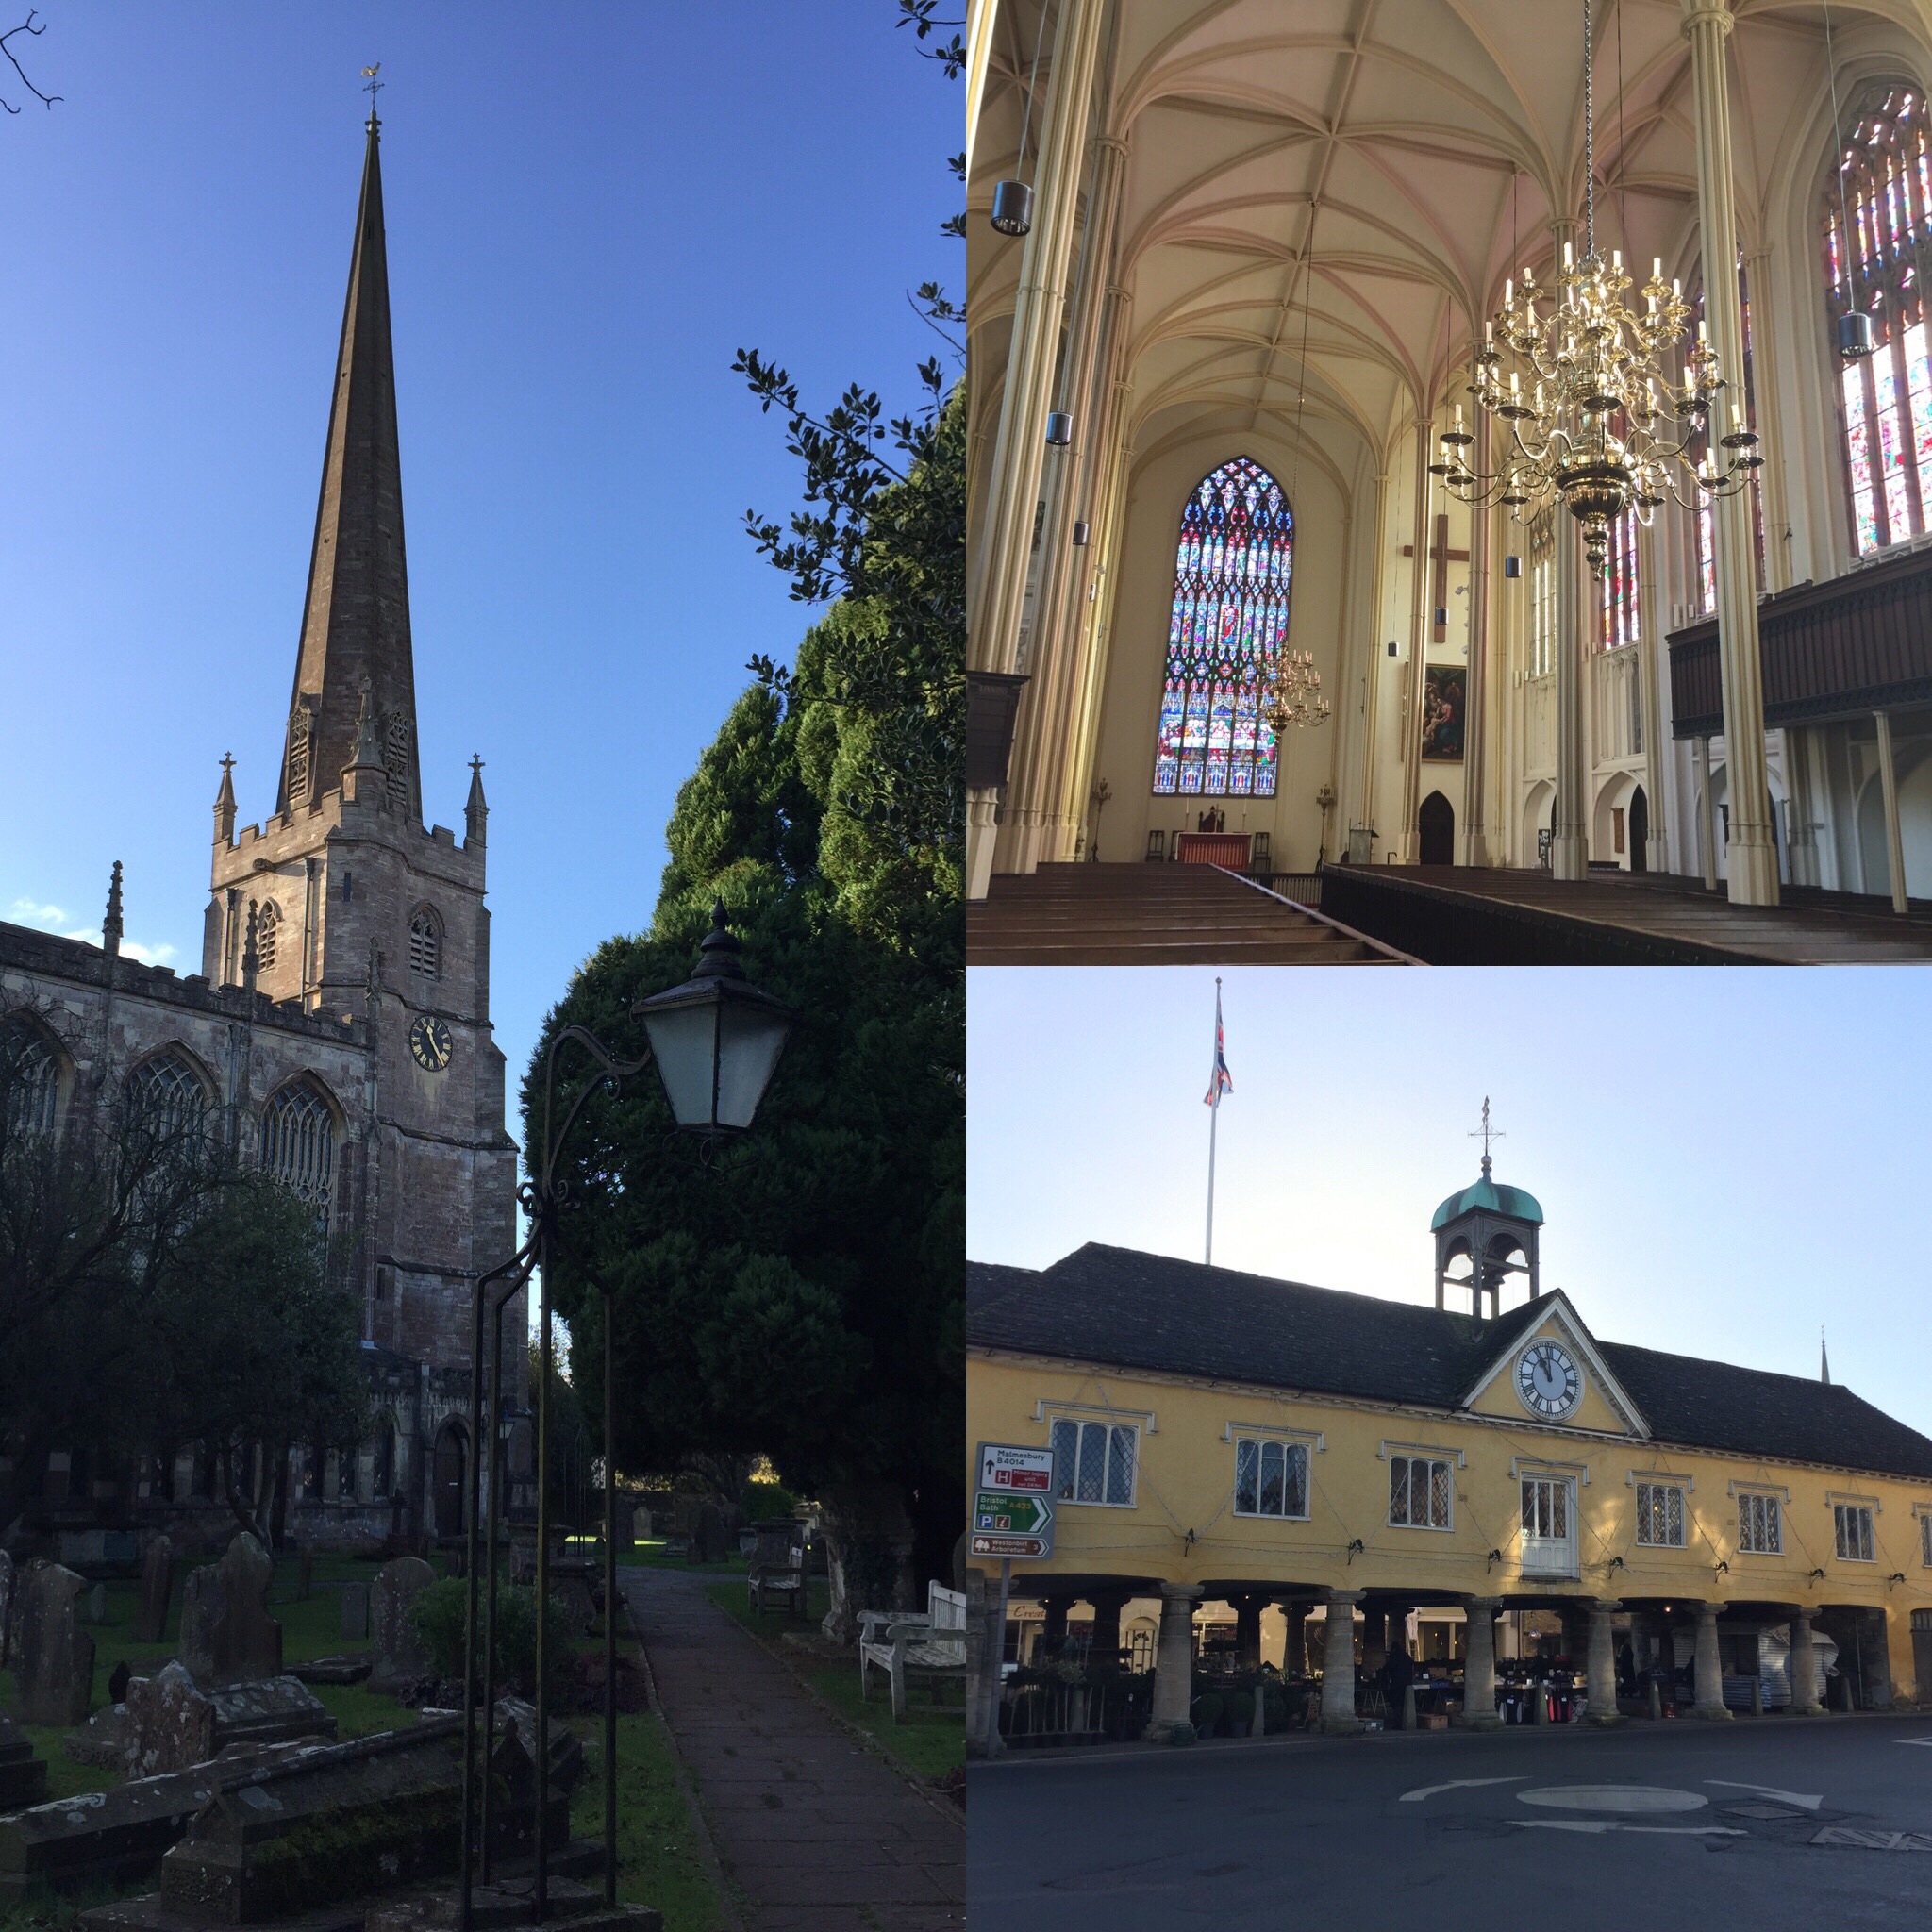 Tetbury Church and Market House